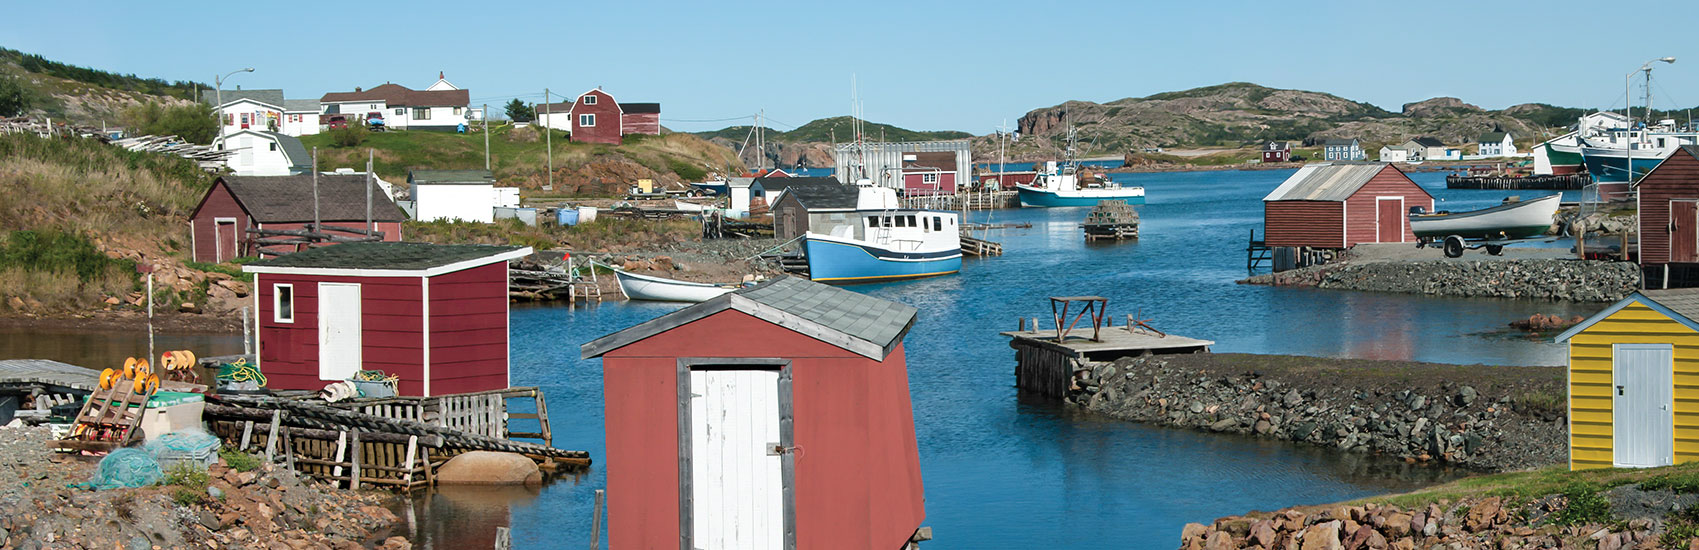 Scenery, History and Fun Await in Newfoundland 0